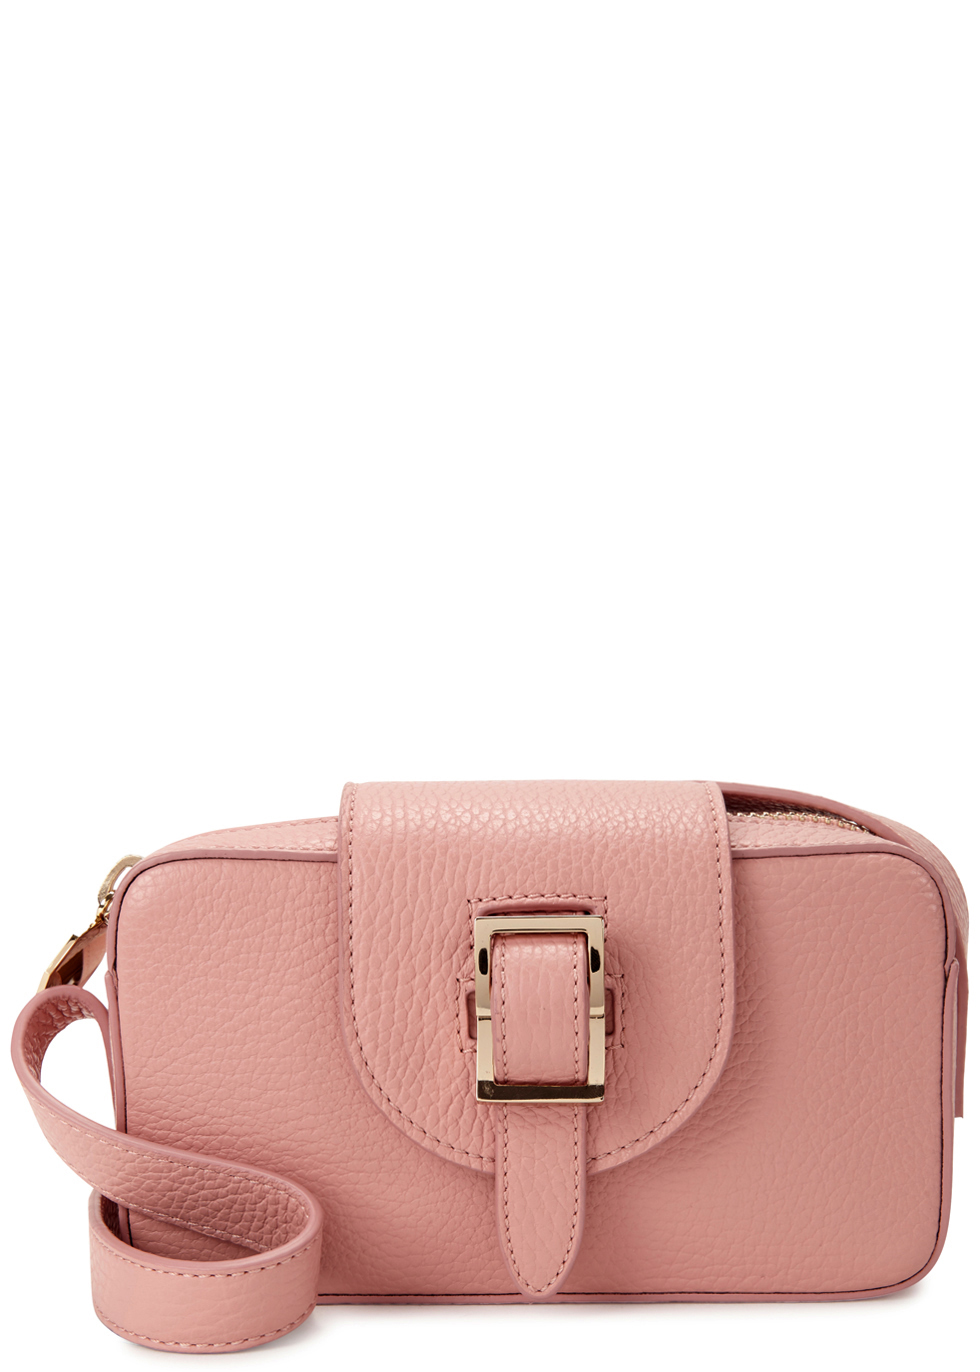 Microbox Pink Leather Cross Body Bag - predominant colour: pink; occasions: casual, creative work; type of pattern: standard; style: shoulder; length: shoulder (tucks under arm); size: small; material: leather; pattern: plain; finish: plain; season: a/w 2016; wardrobe: highlight